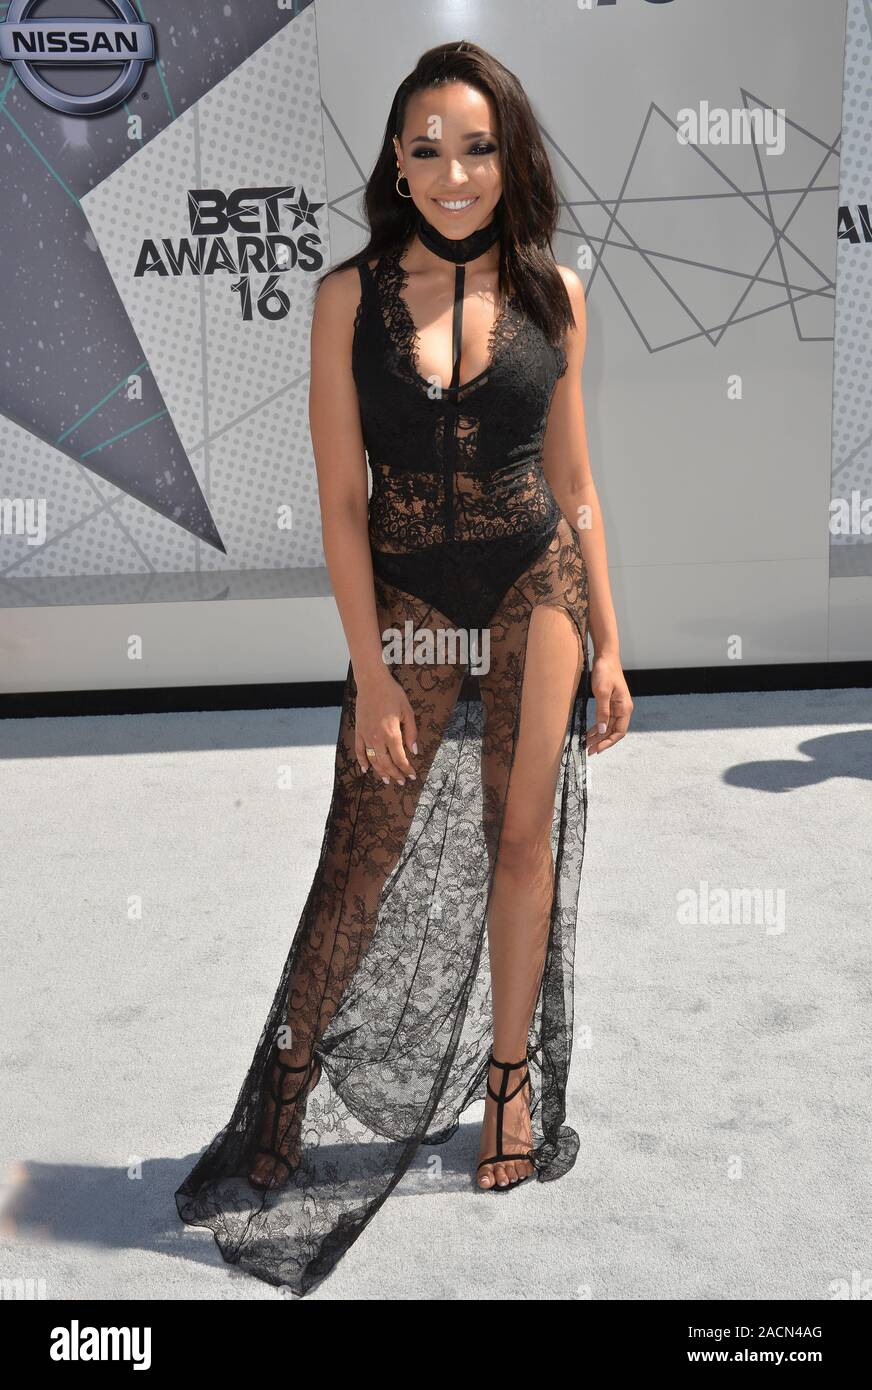 Tinashe bet awards 2 on 1 betting guide cs go download